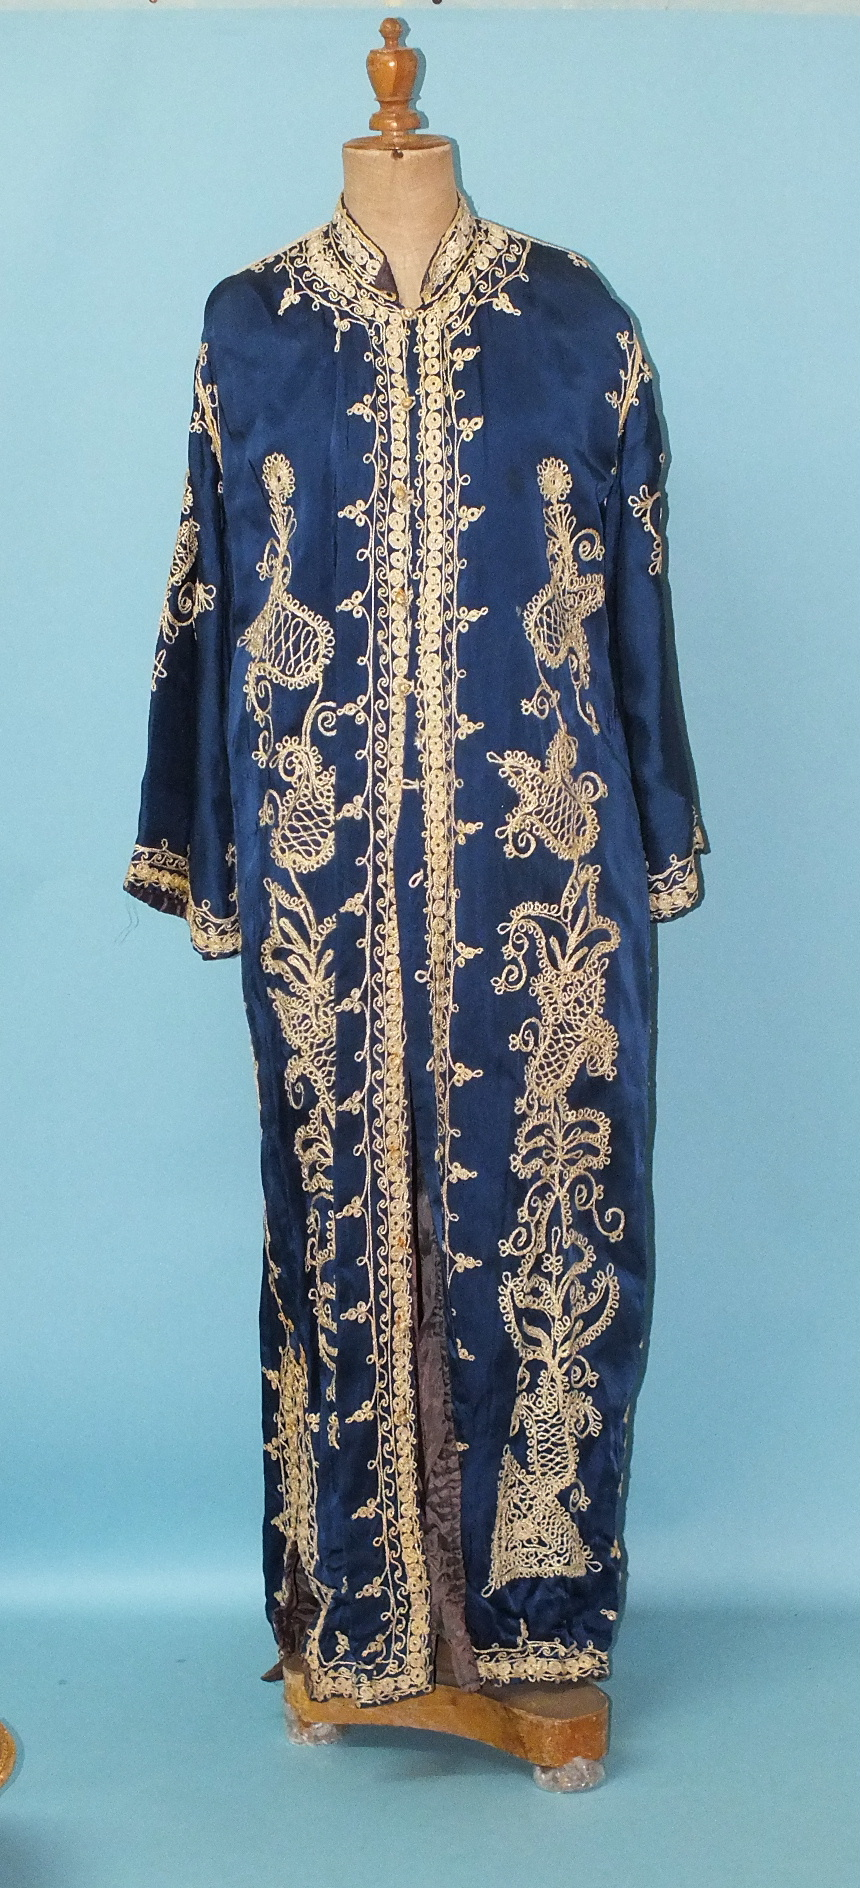 Lot 227 - A deep blue satin coat, possibly Indian, with applied gold thread work, flared sleeves and side